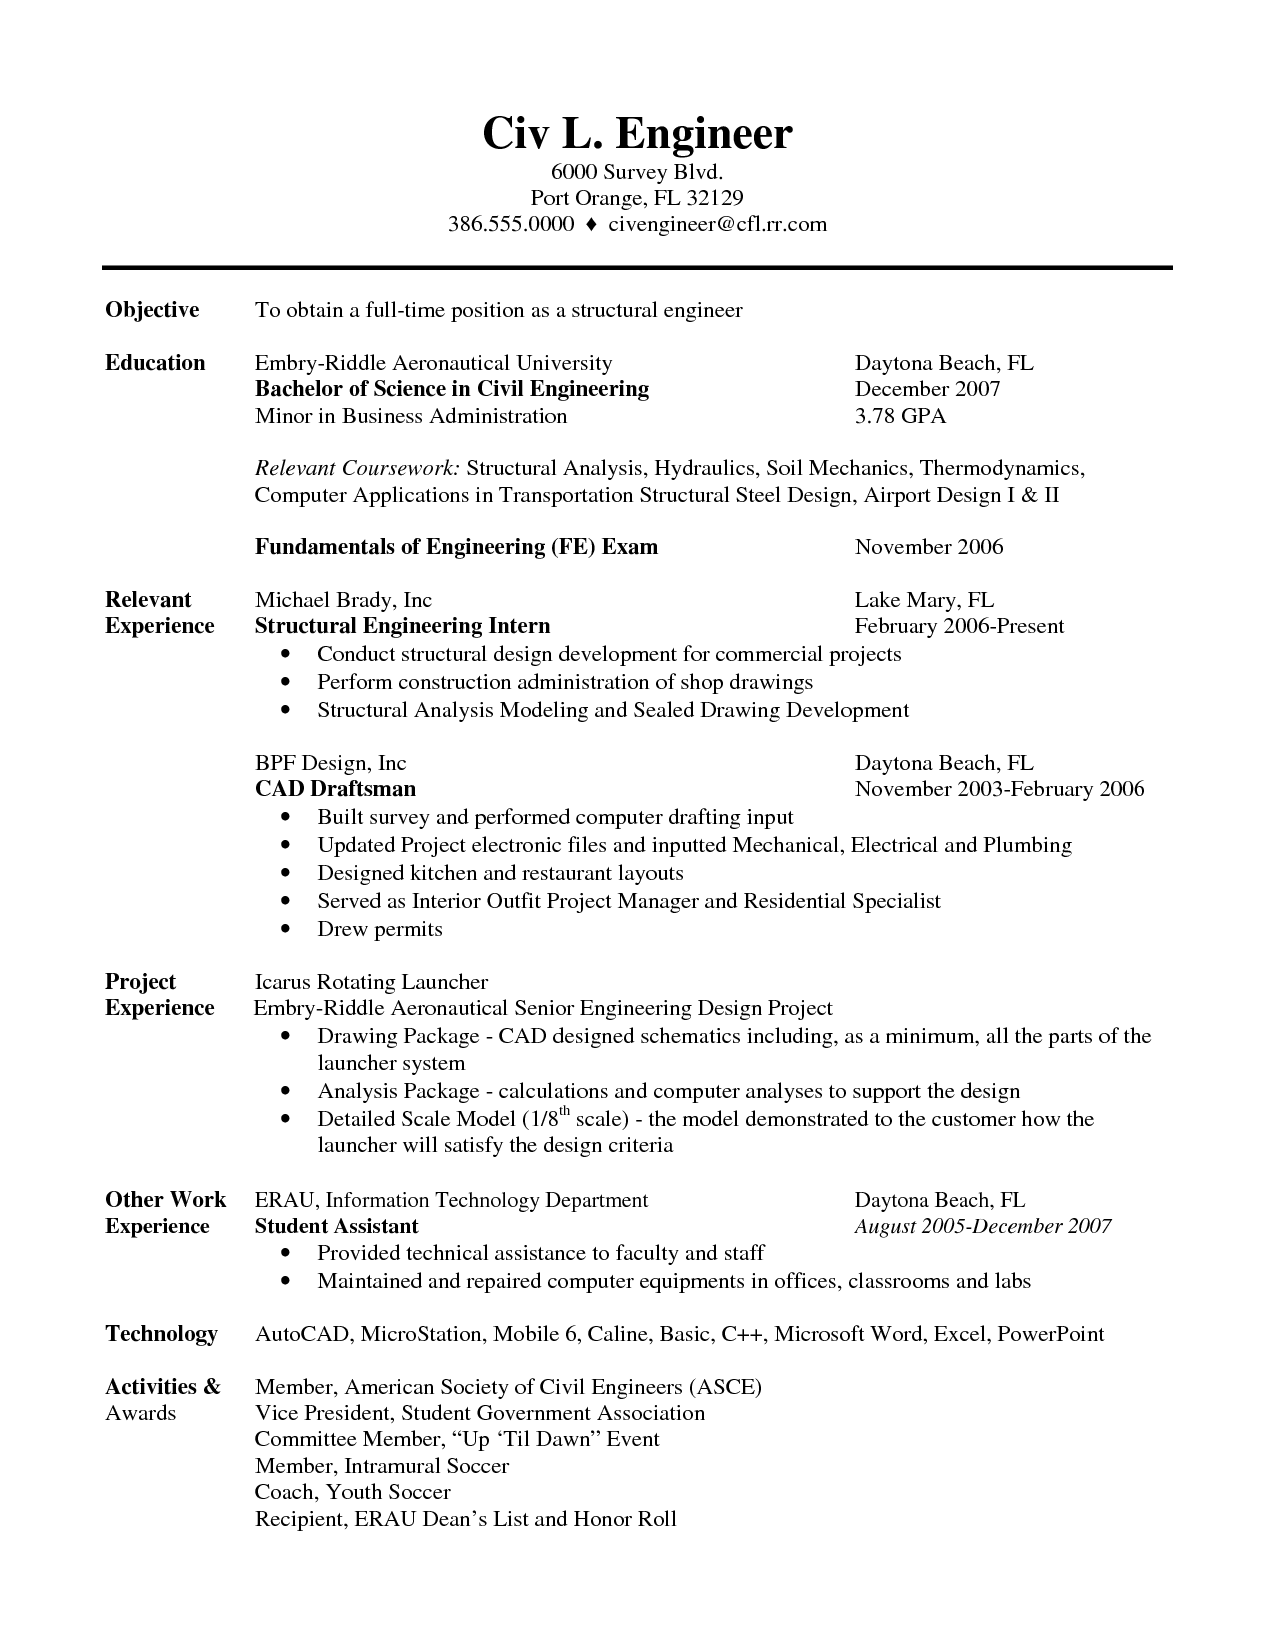 Good Resume Examples For College Students Sample Resumes Http Www Jobresume Website Good Resum Student Resume Student Resume Template Civil Engineer Resume